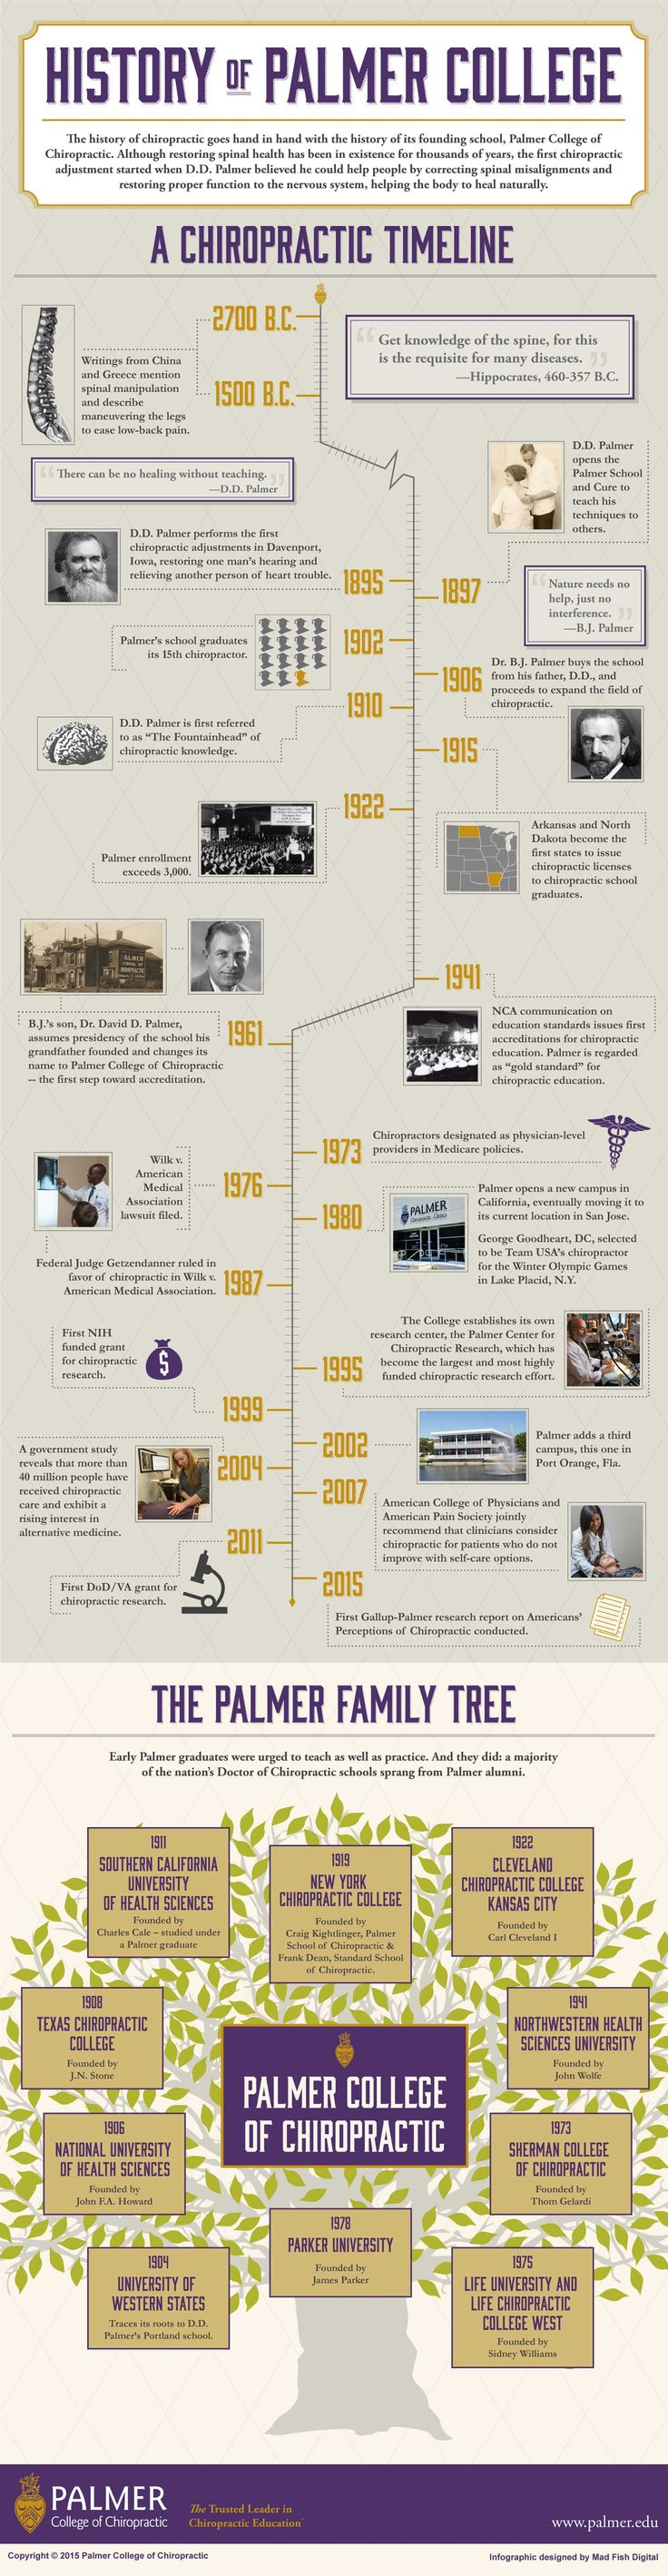 The history of Palmer College of Chiropractic